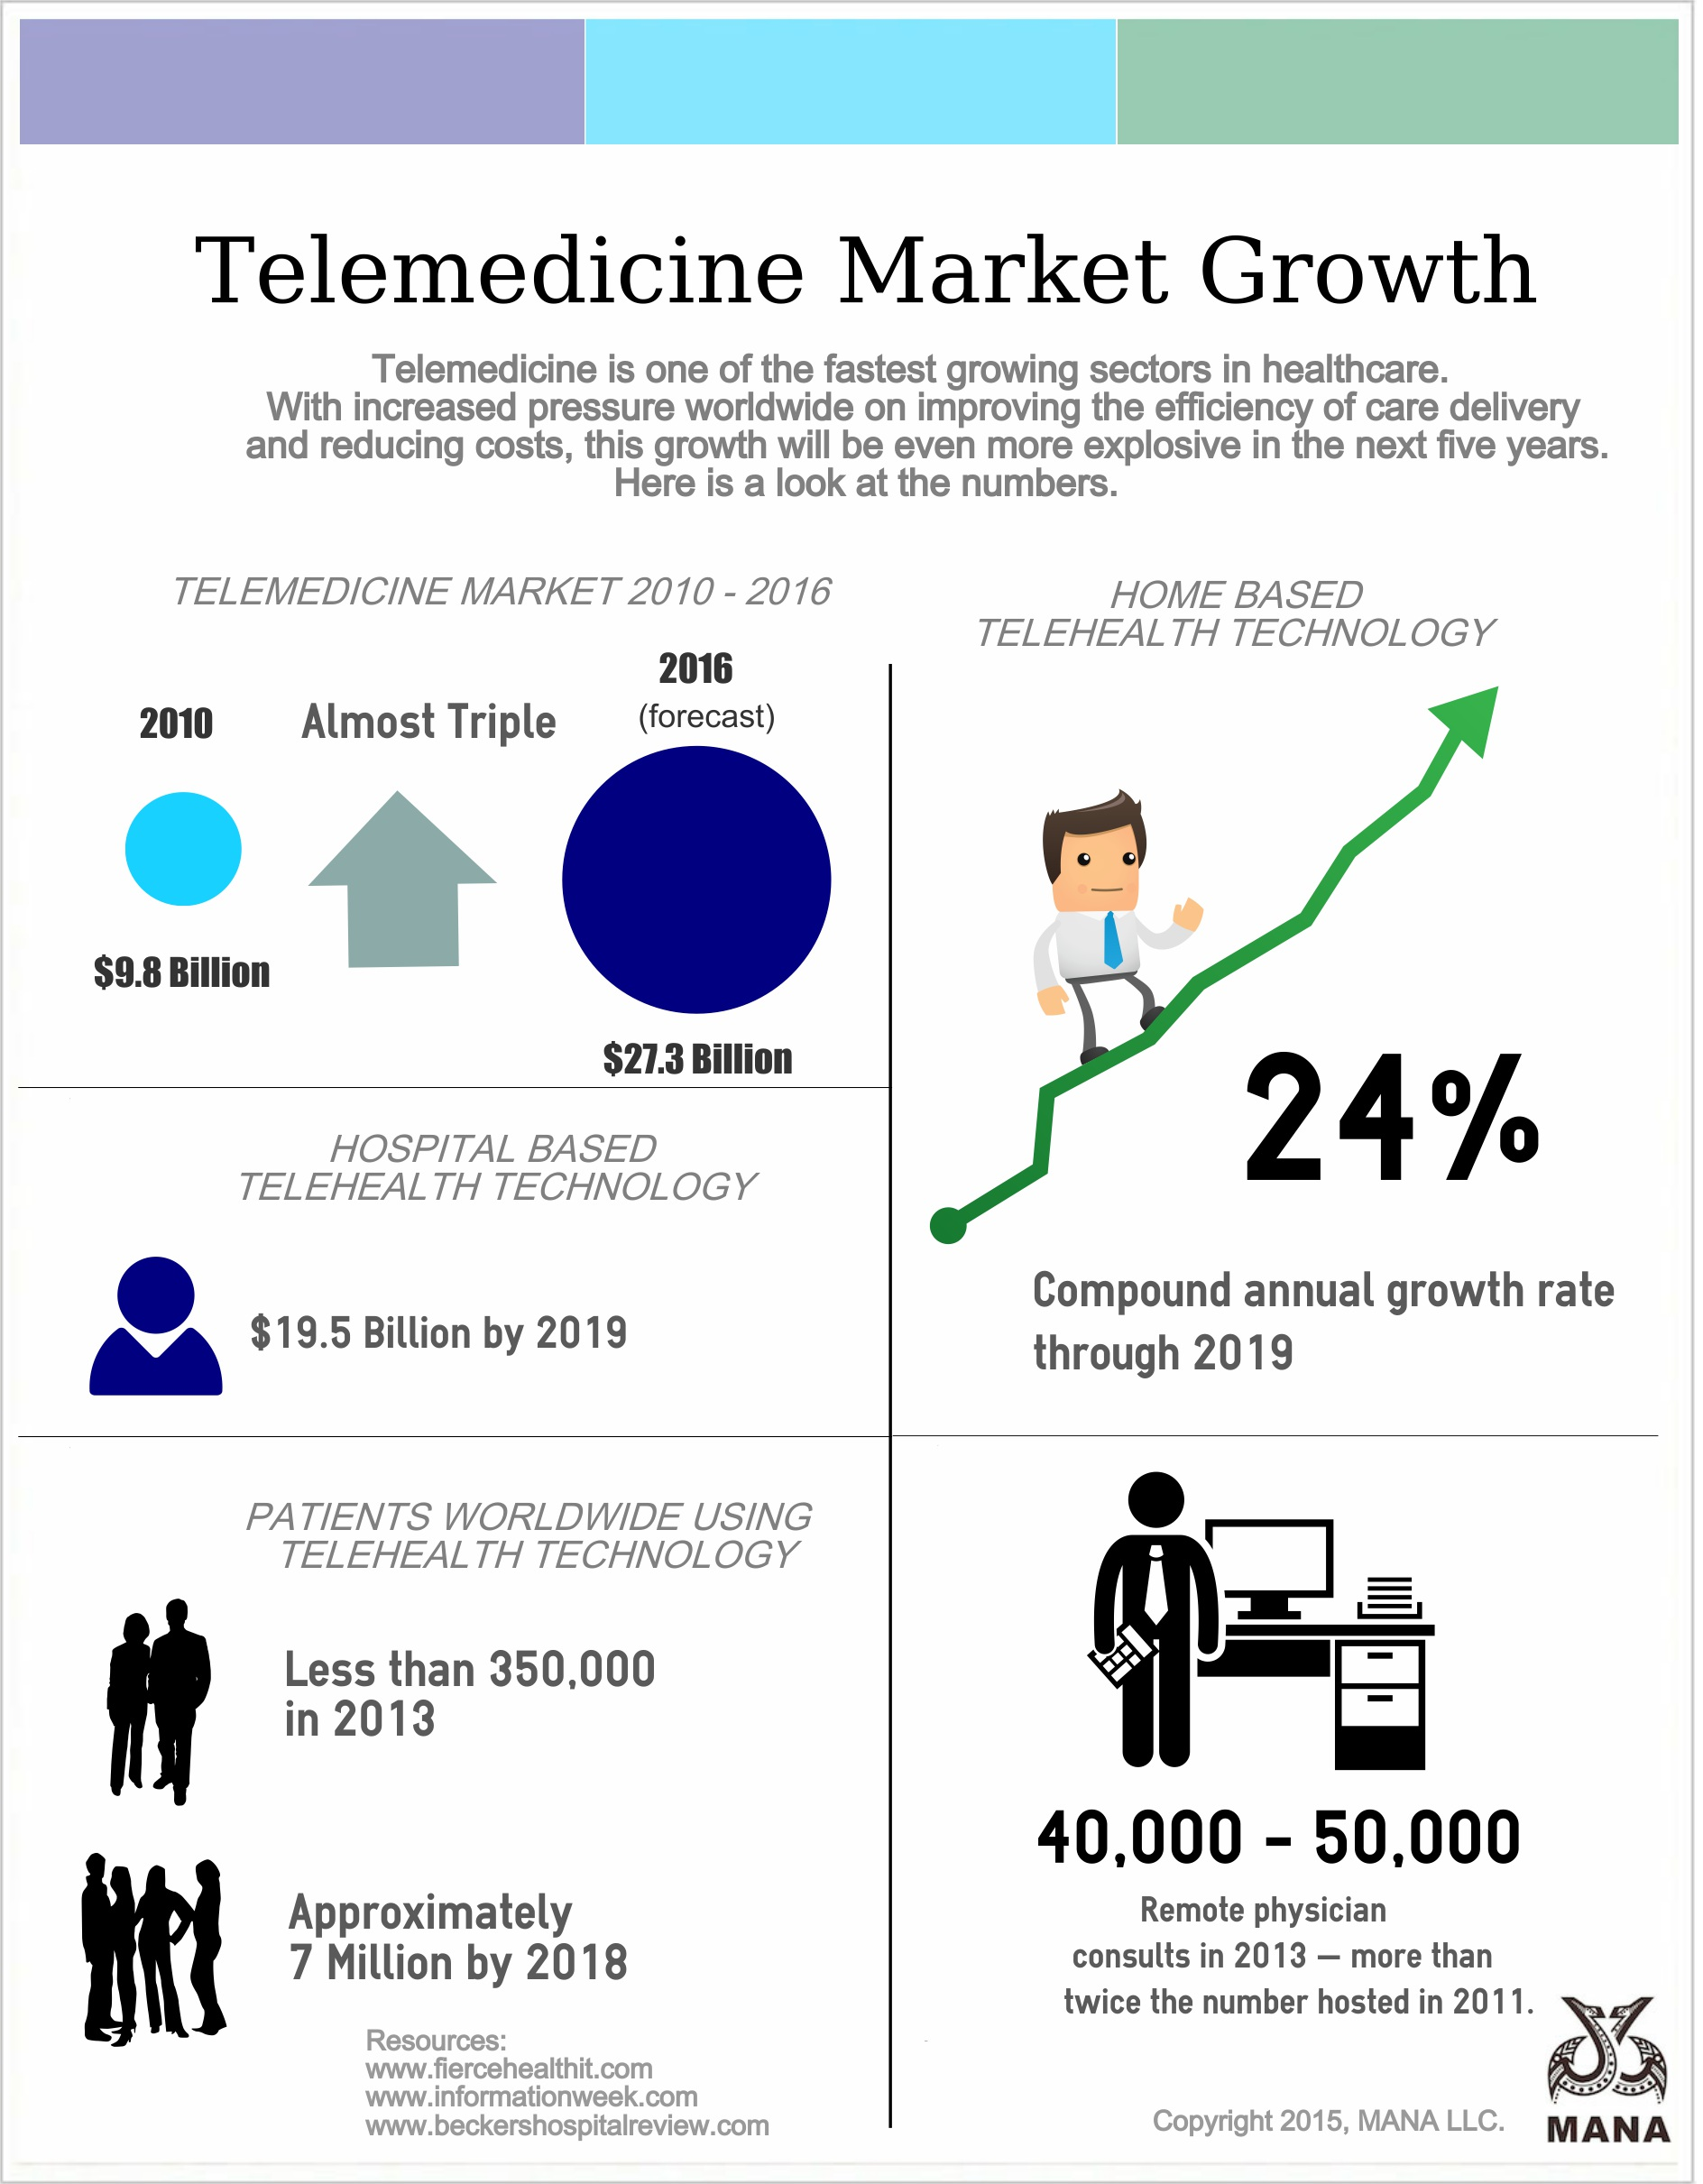 TelemedicineMarketGrowth